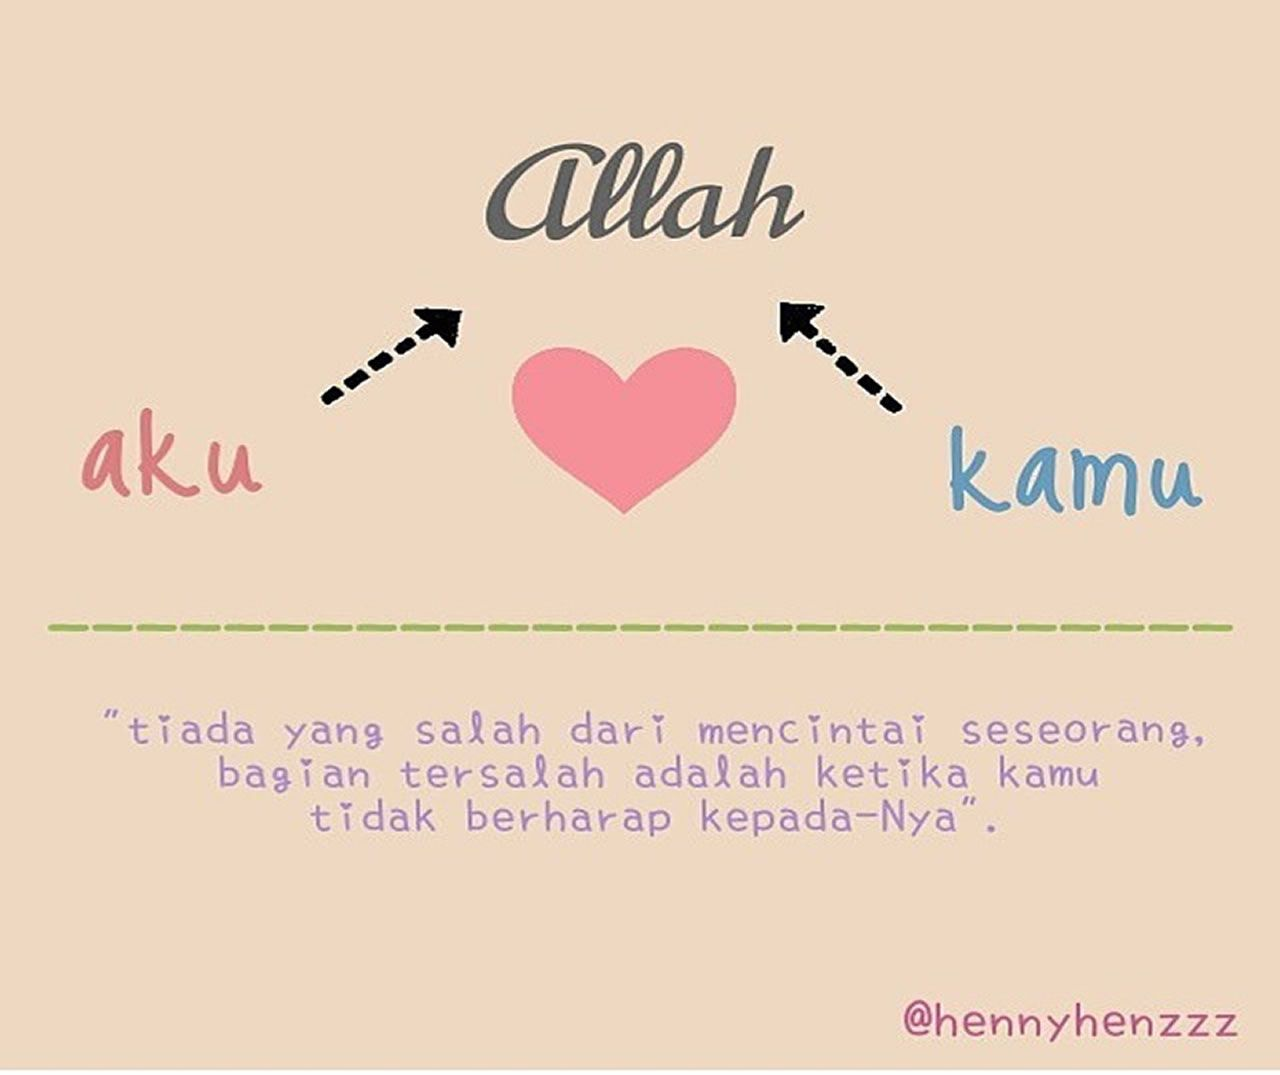 Allah Aku Kamu Cinta Love Jpg 1280 1075 Words Home Decor